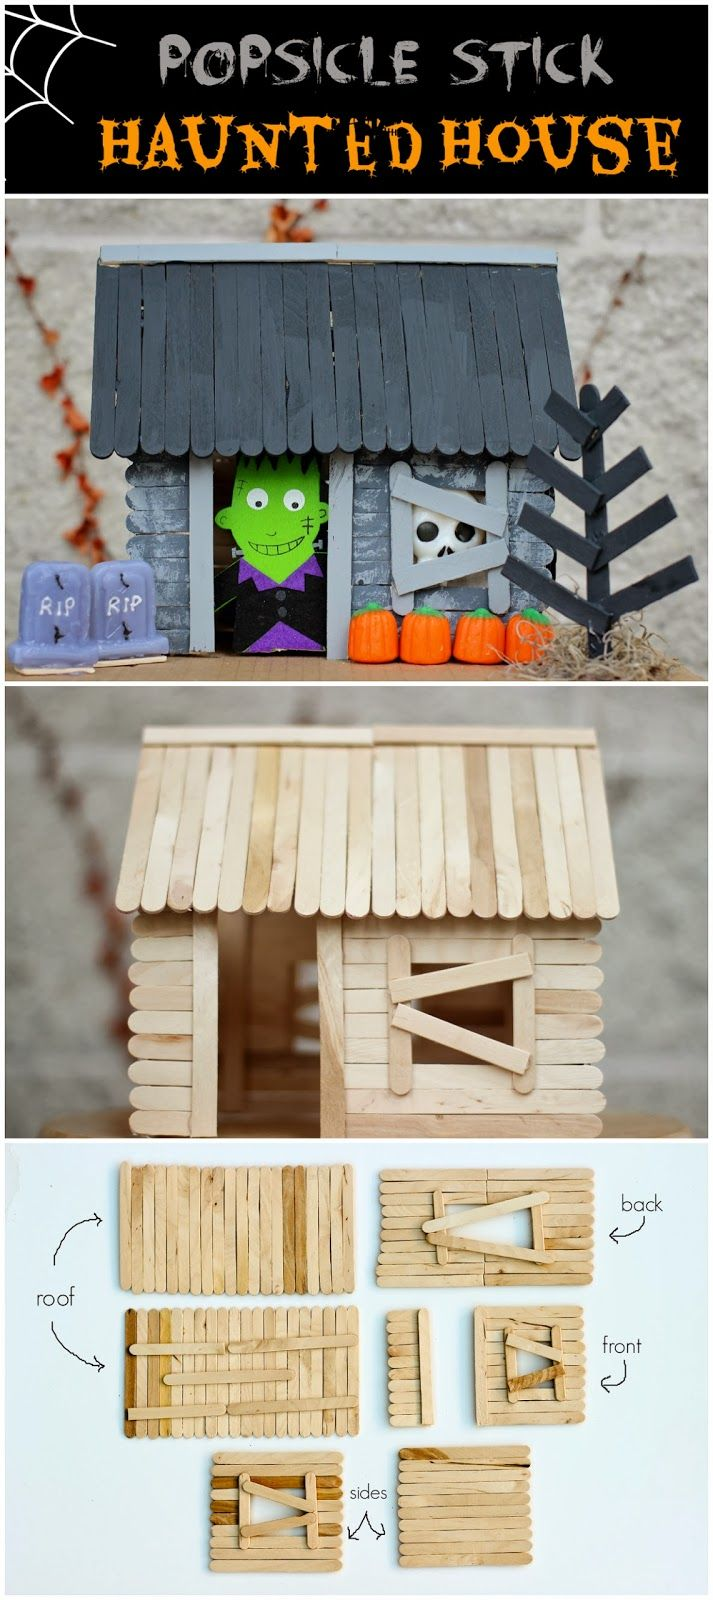 7570910fd Popsicle Stick Haunted House via Happily Everly After @Popsicle #partner